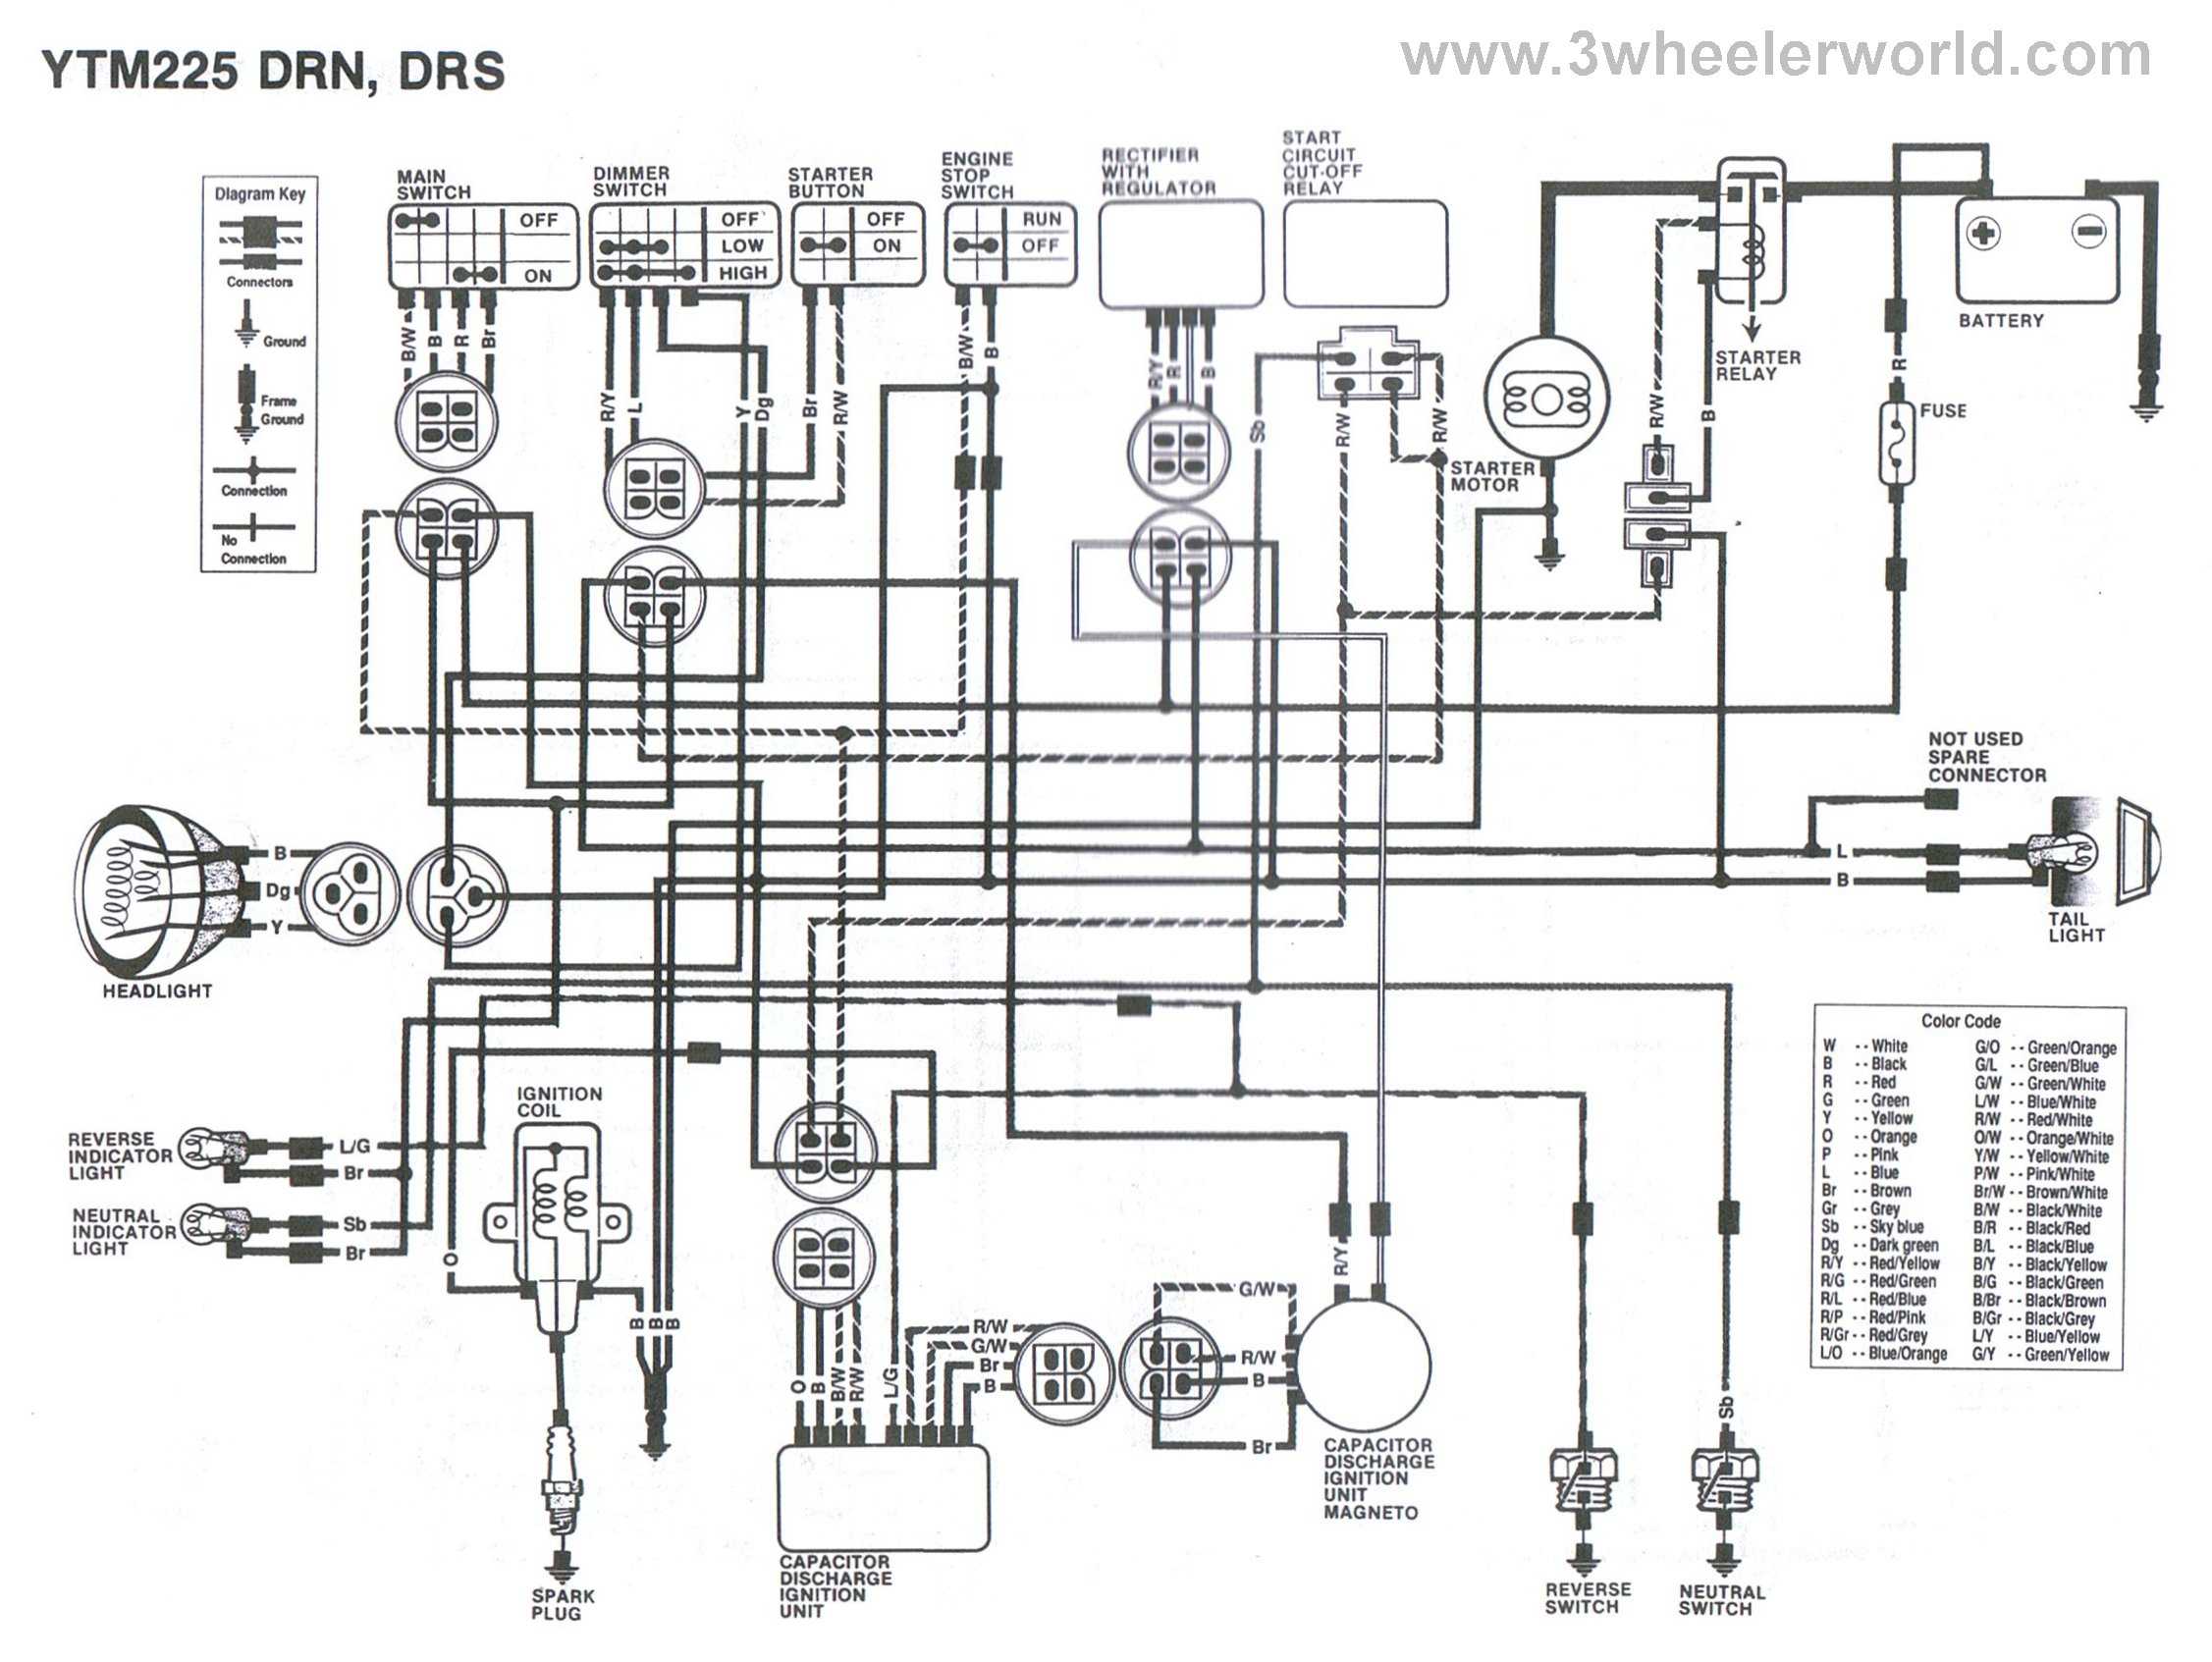 wiring diagram yamaha moto 4 with Wiringyamaha on R11 C Wiring Diagram Electric Mobility moreover B 01 additionally 309880 Wiring Diagram 1987 Bayou Klf 300 A likewise 368074 1988 Yamaha Big Bear 350 Cdi additionally WiringYamaha.